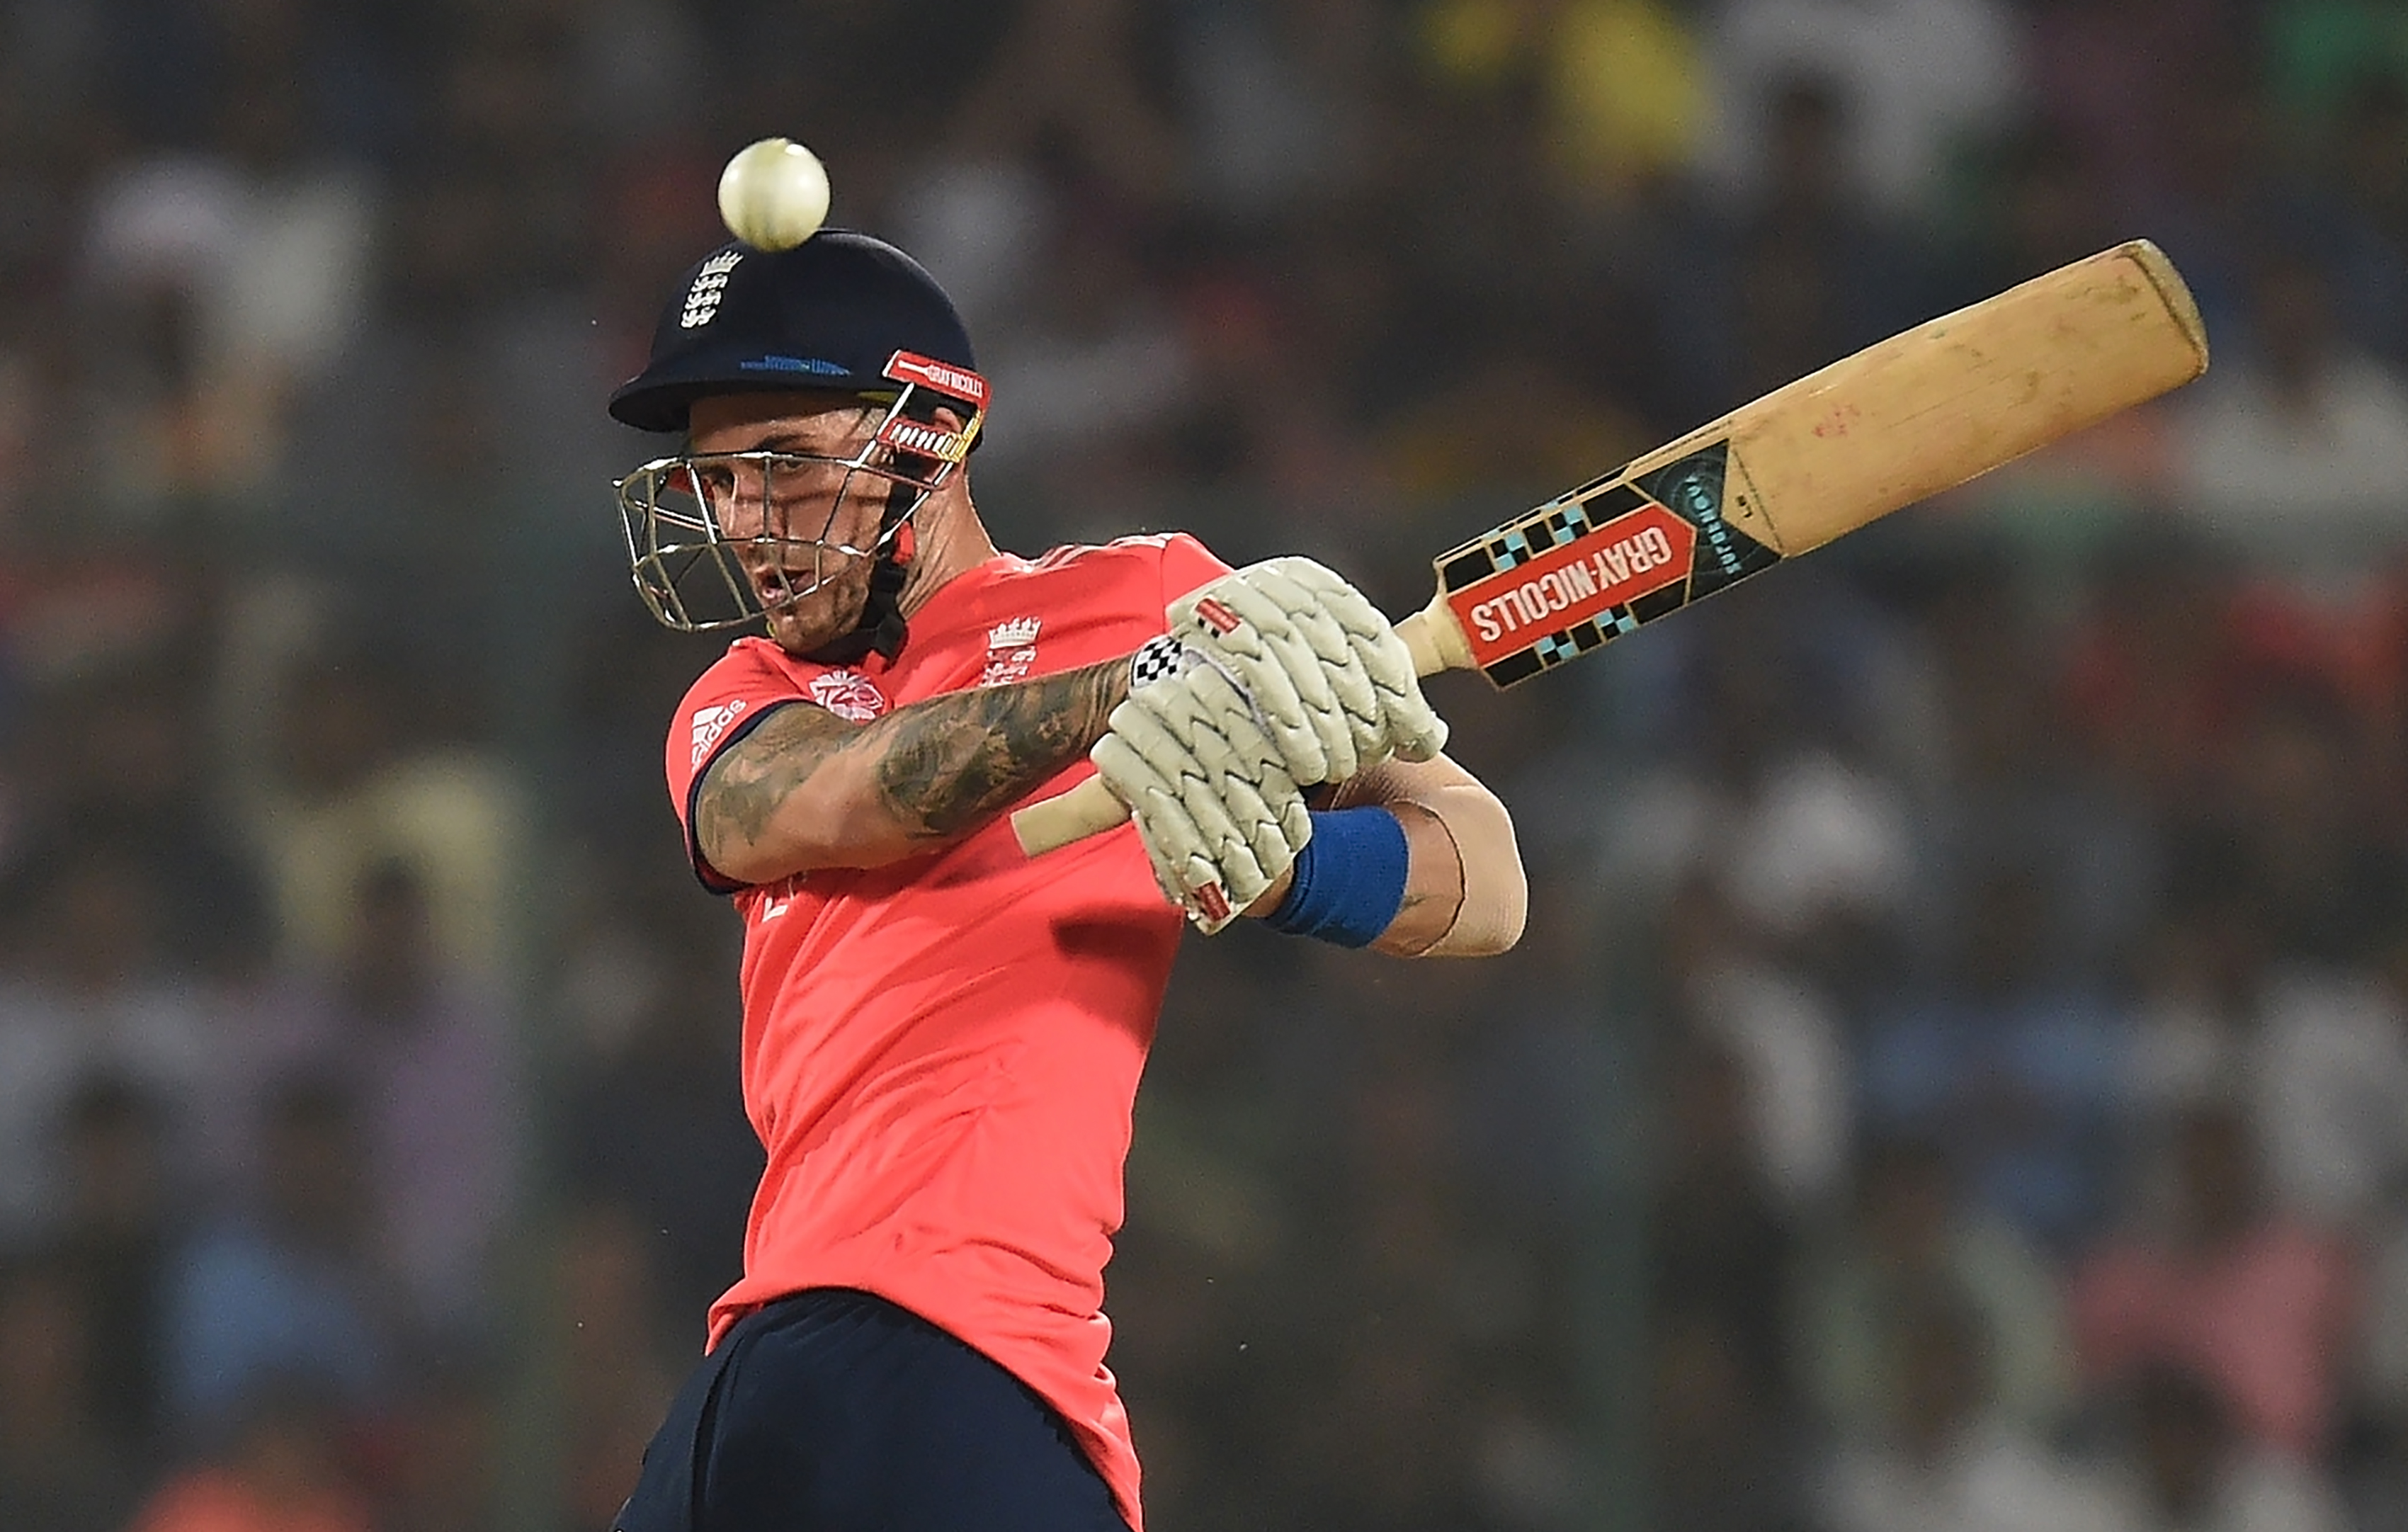 england vs west indies time, england vs west indies channel, england vs west indies stadium, england vs west indies location, t20 final 2016, t20 final channel